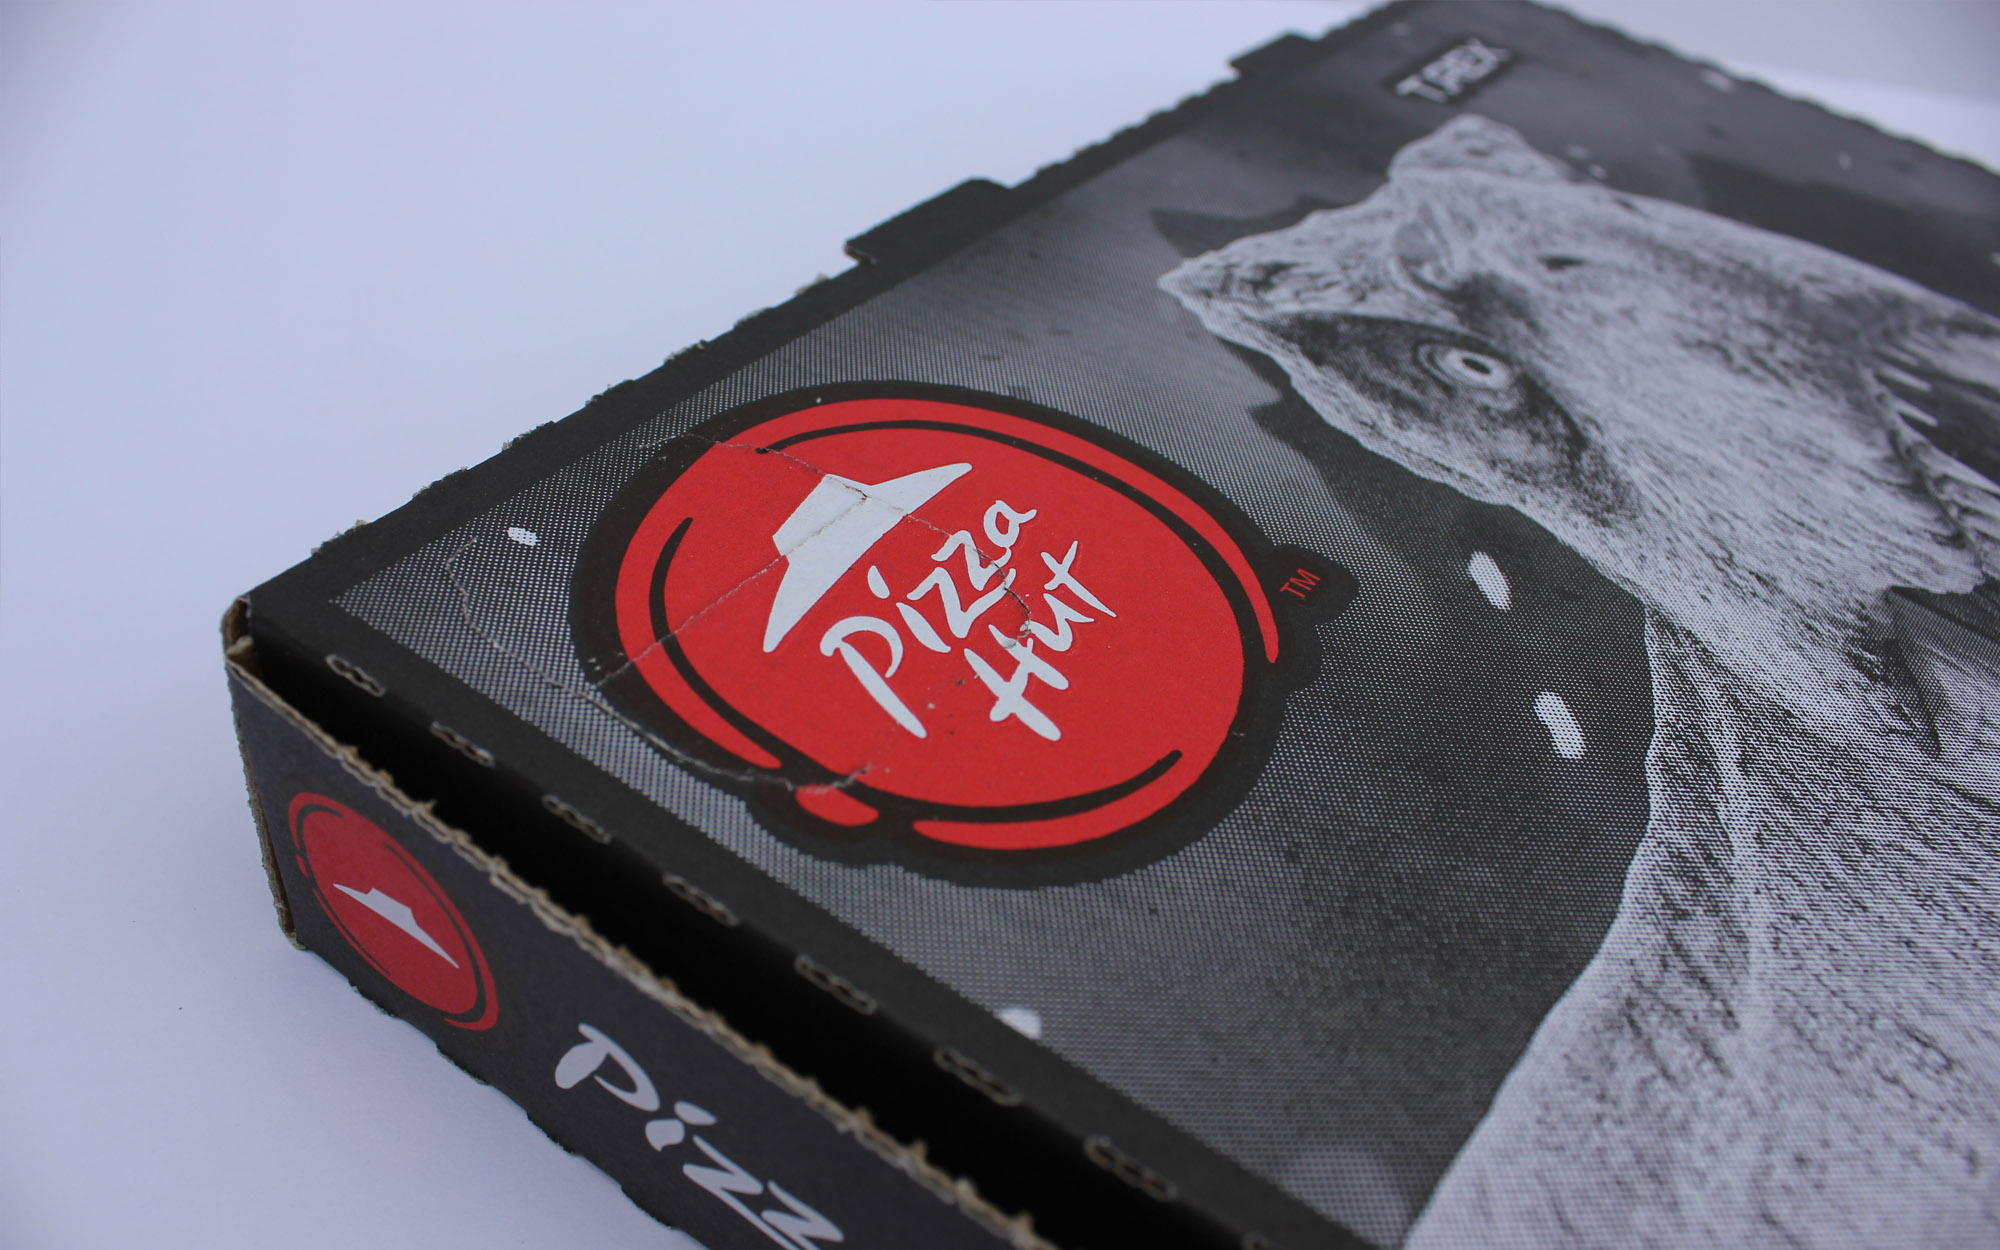 matthew_pomorski_graphic_designer_pizza_box_artwork_pizza_hut_jurassic_world_fallen_kingdom_promotion_close_up